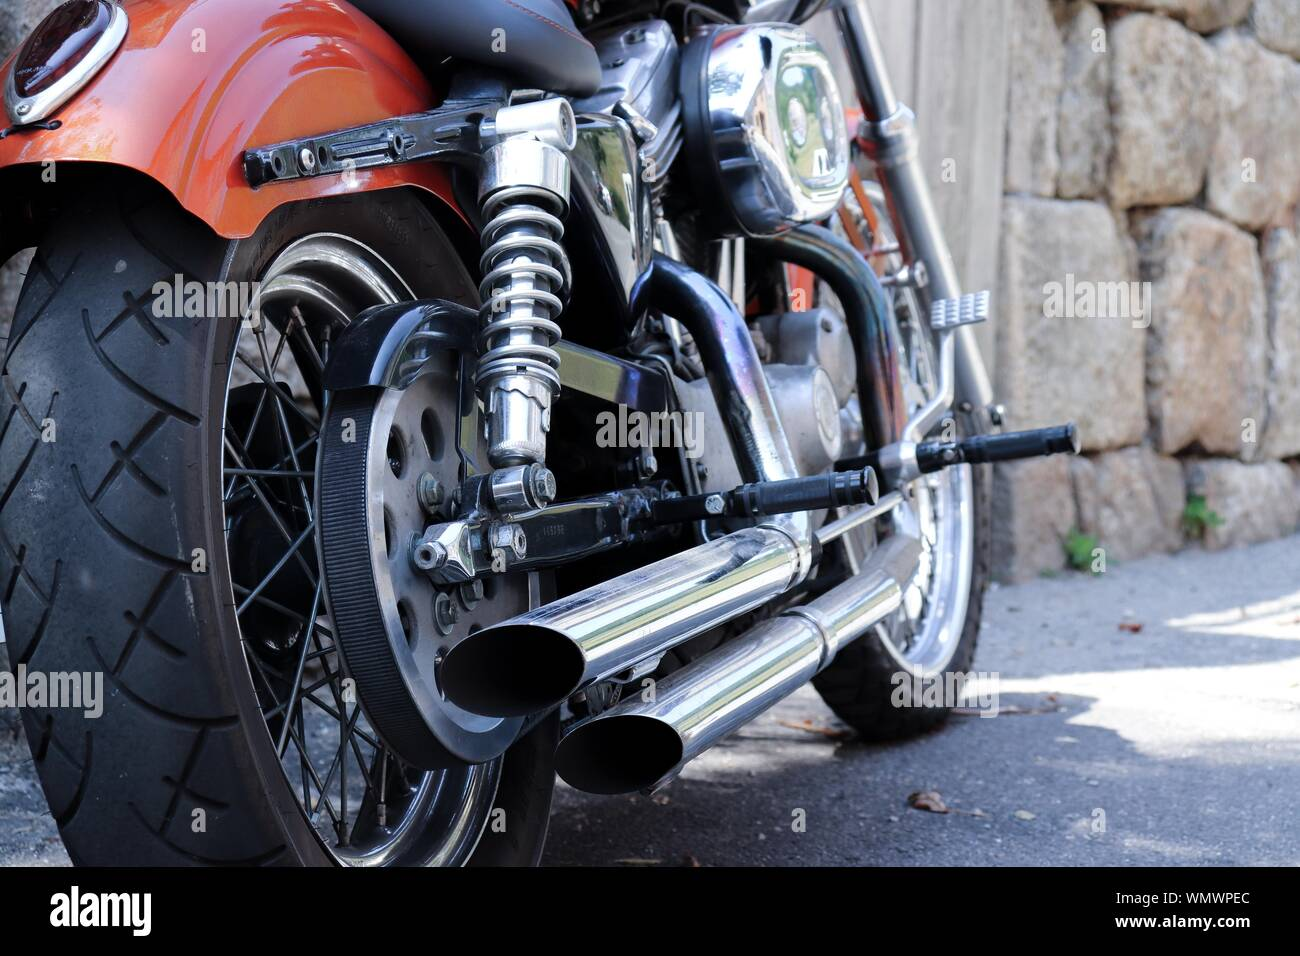 https www alamy com close shot of motorcycle exhaust pipe with a blurred background image271015092 html